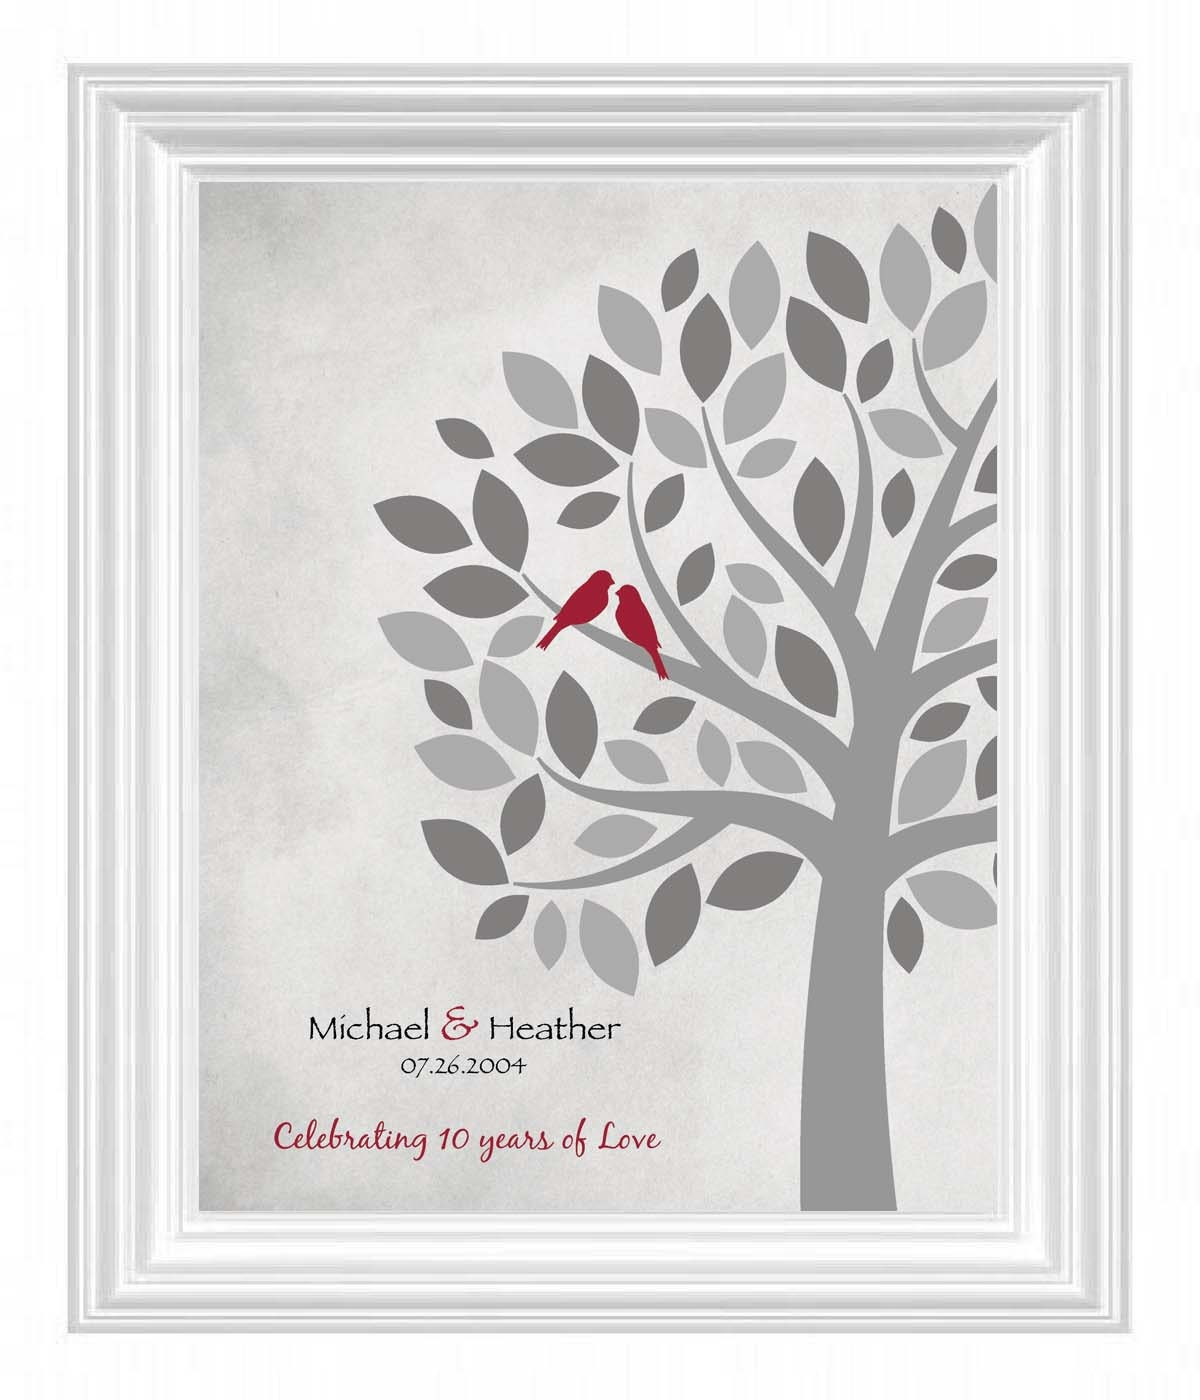 Gifts For 10th Wedding Anniversary For The Couple: 10th ANNIVERSARY PRINT Anniversary Gift For Wife 10th